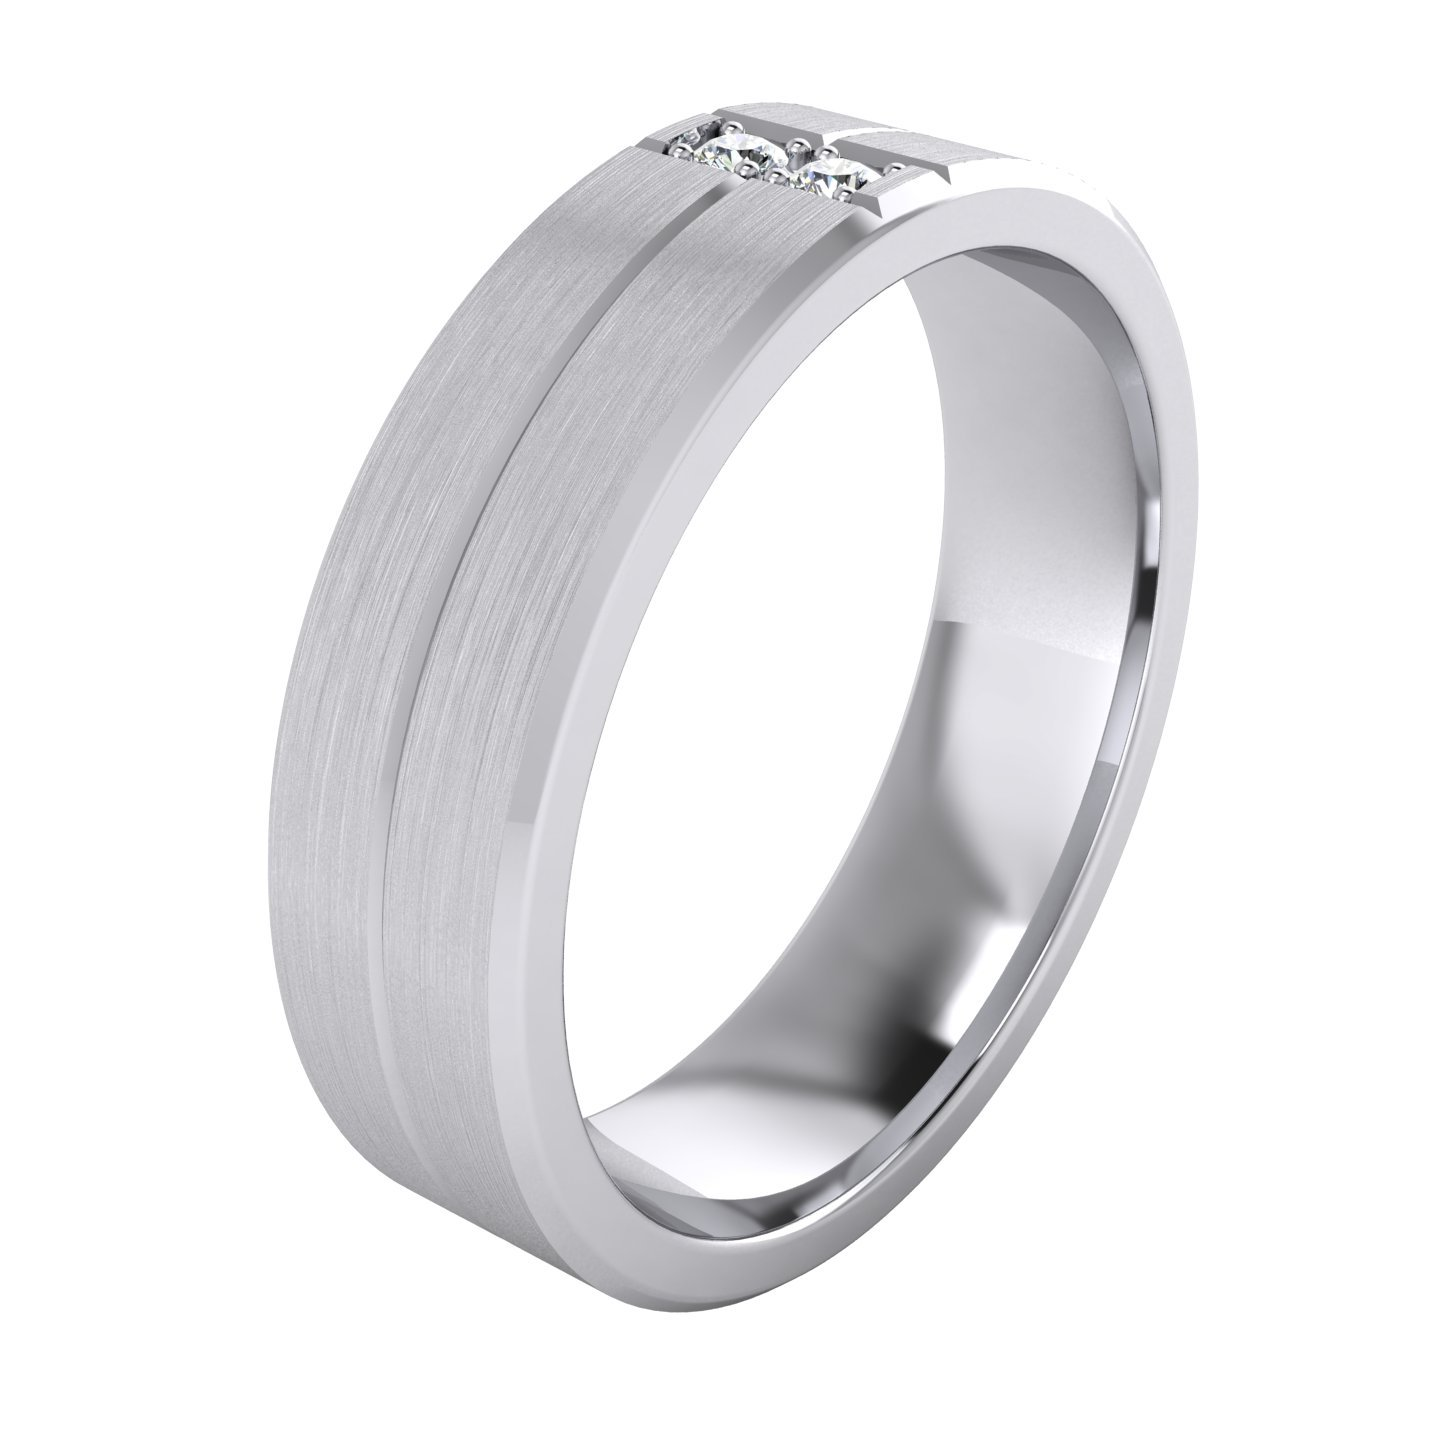 Heavy Sterling Silver 6mm Unisex Wedding Band Simulated Diamonds Ring Comfort Fit Grooved Brushed Bevelled Edges (11)